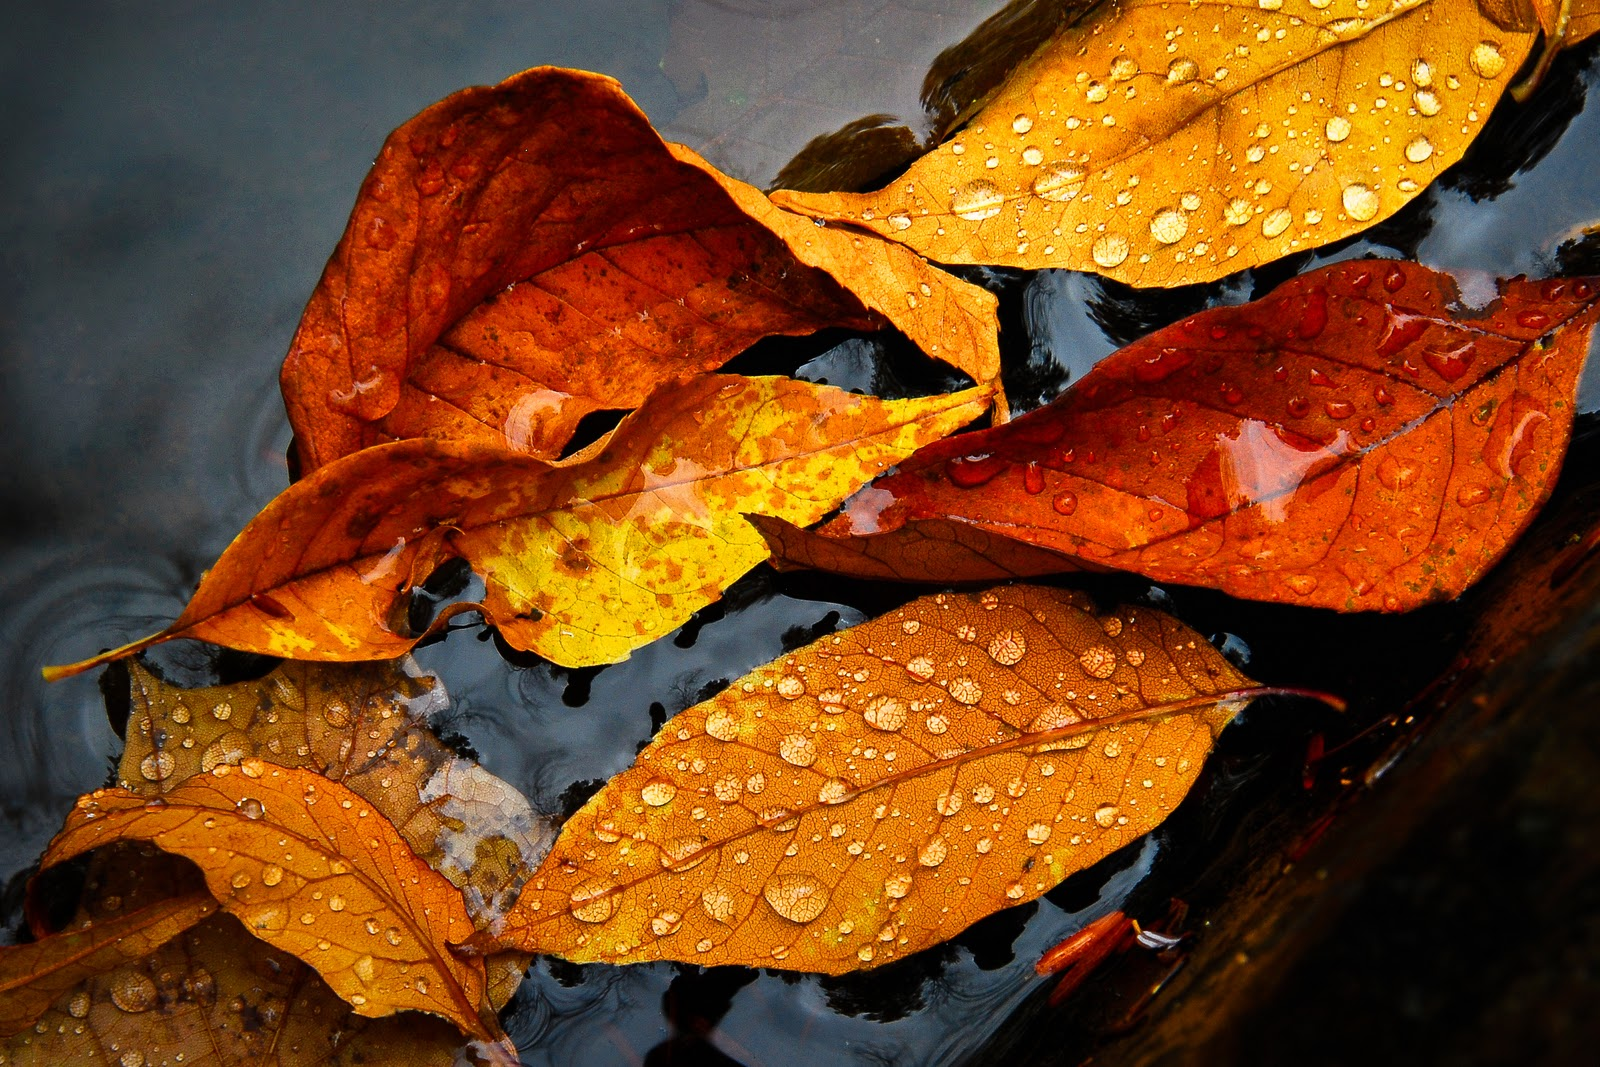 Rainy Fall Wallpaper Soul Centered Photography October 2011